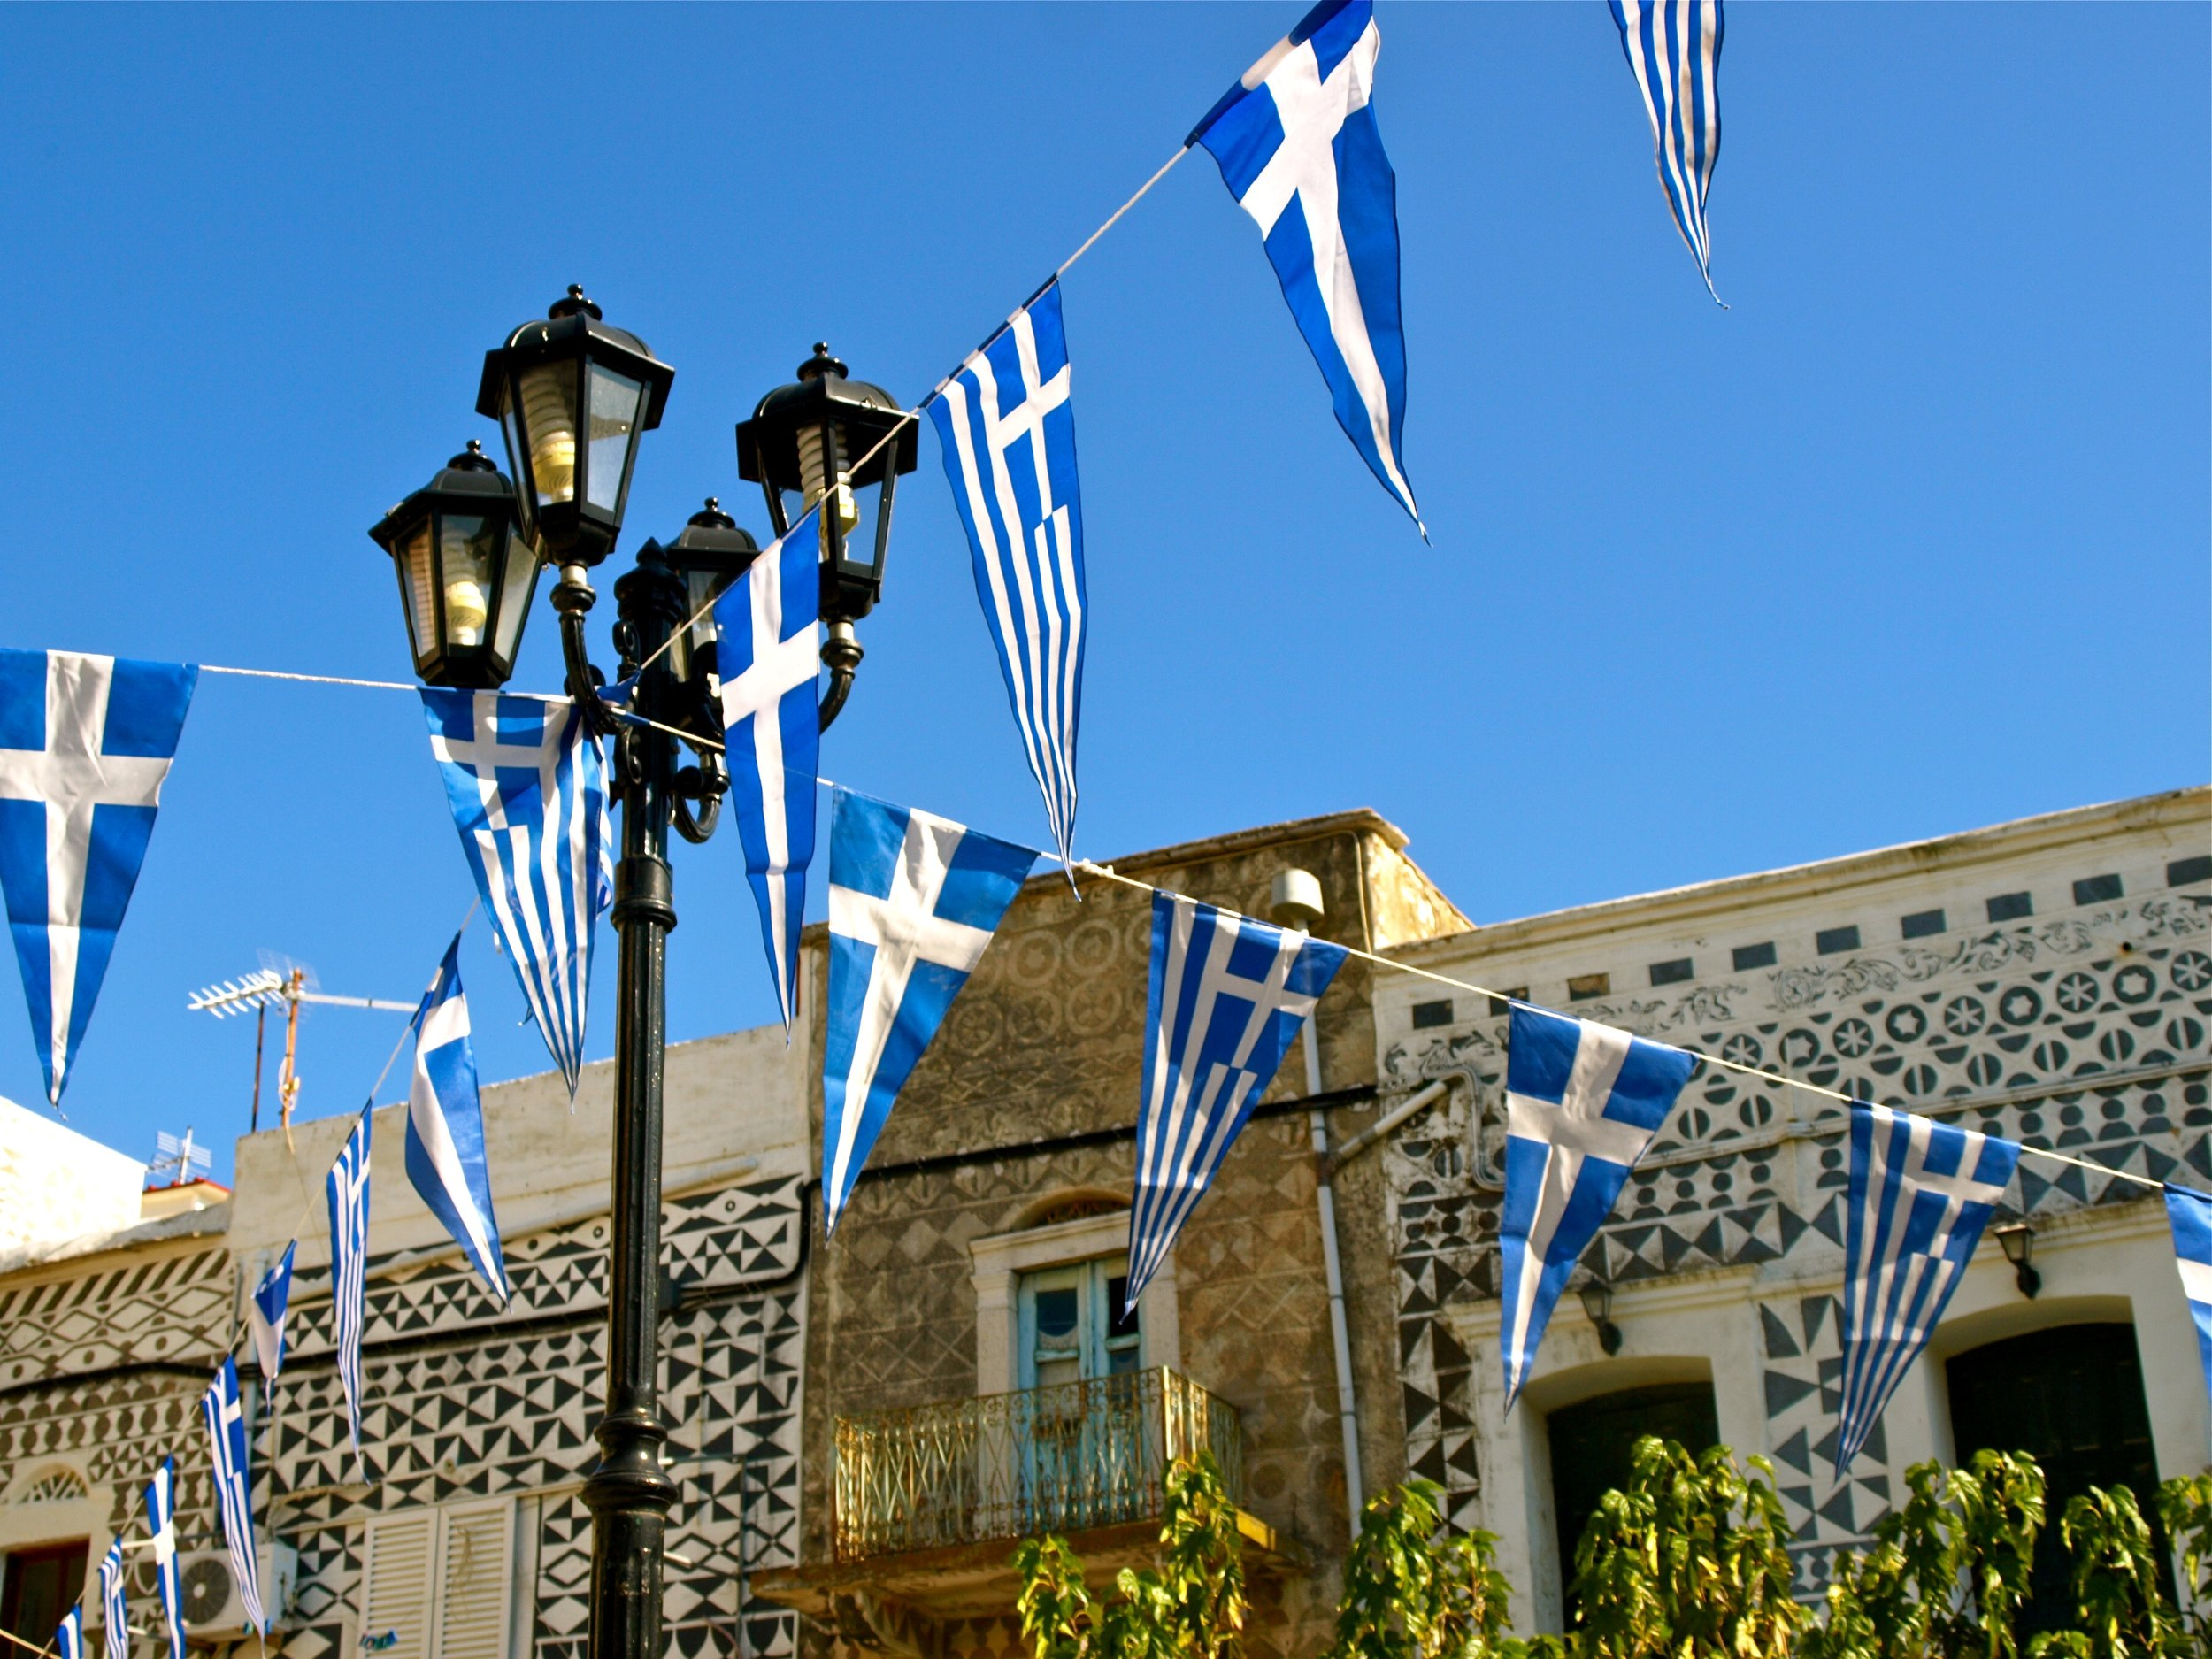 The village of Pyrgi in Chios decked out for 28 October (Photo by Katherine Poseidon)